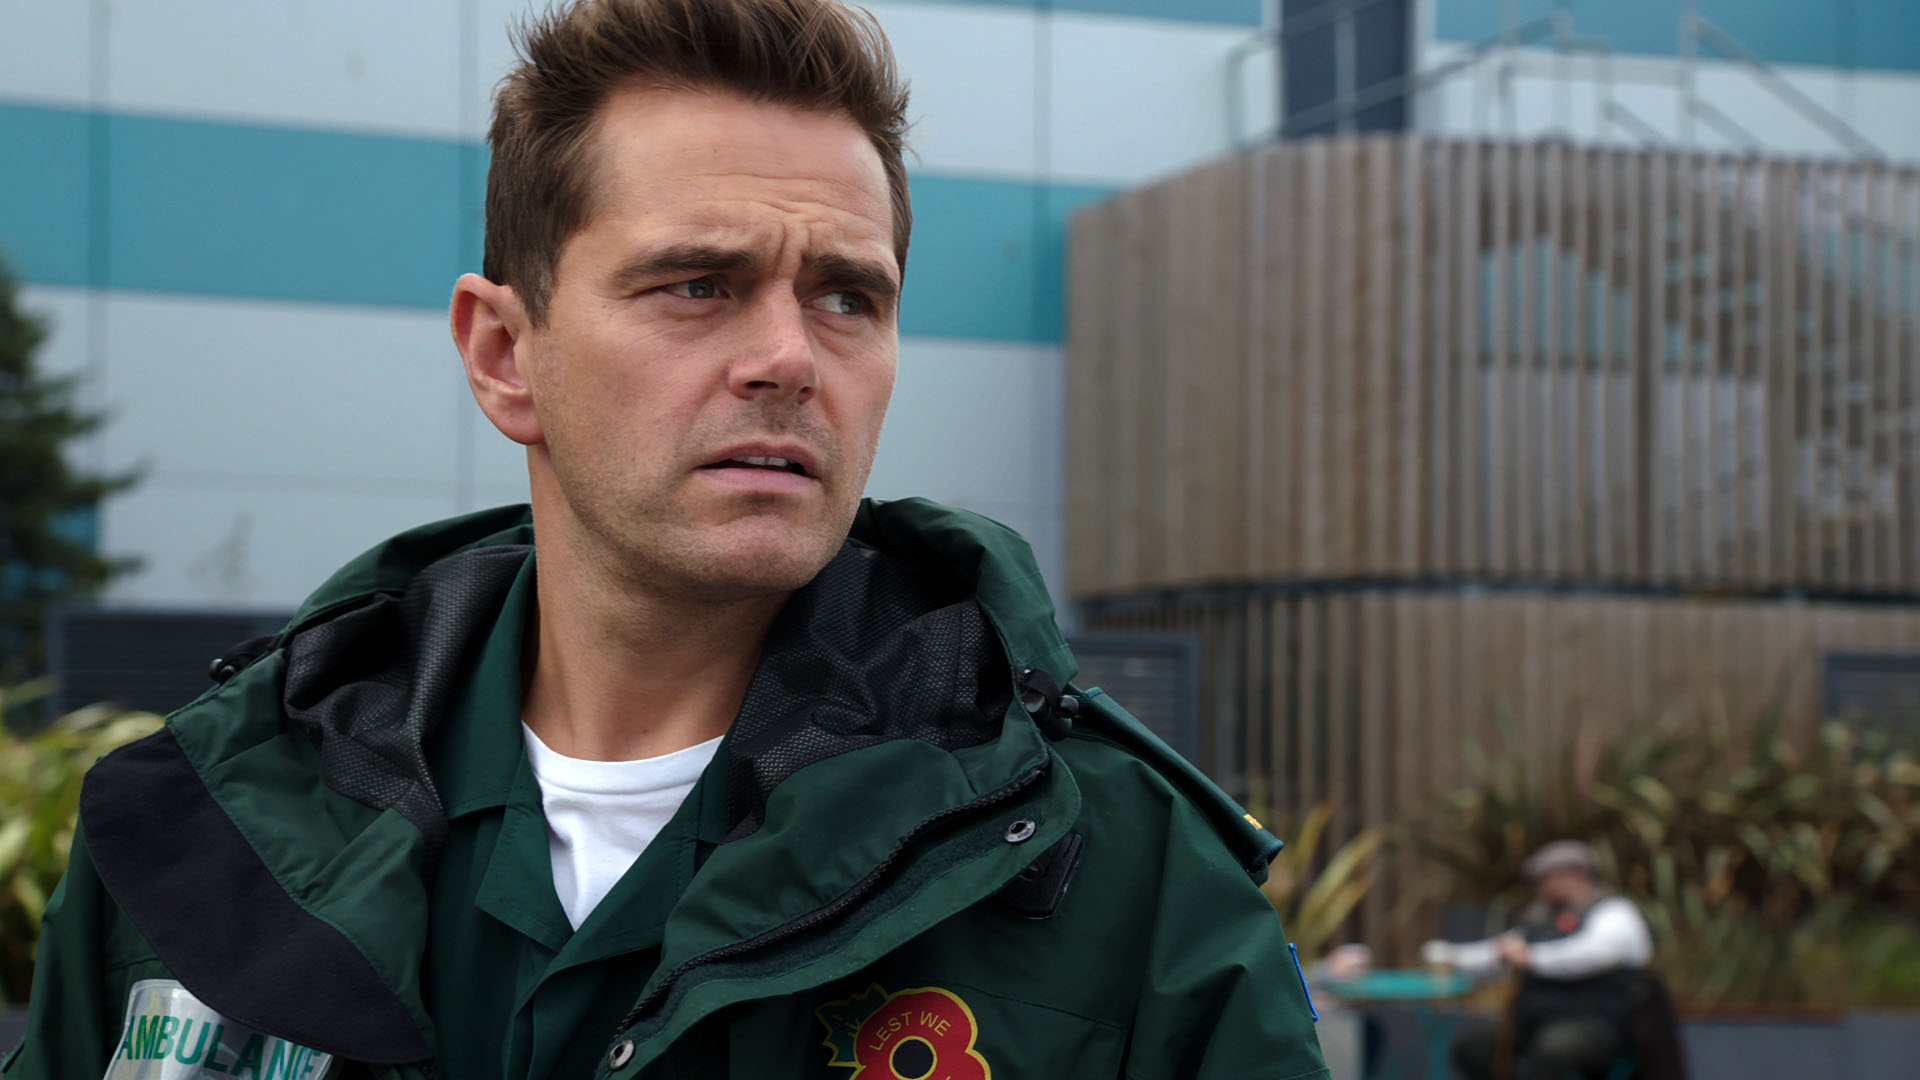 Casualty spoilers! Breaking point for Iain Dean!